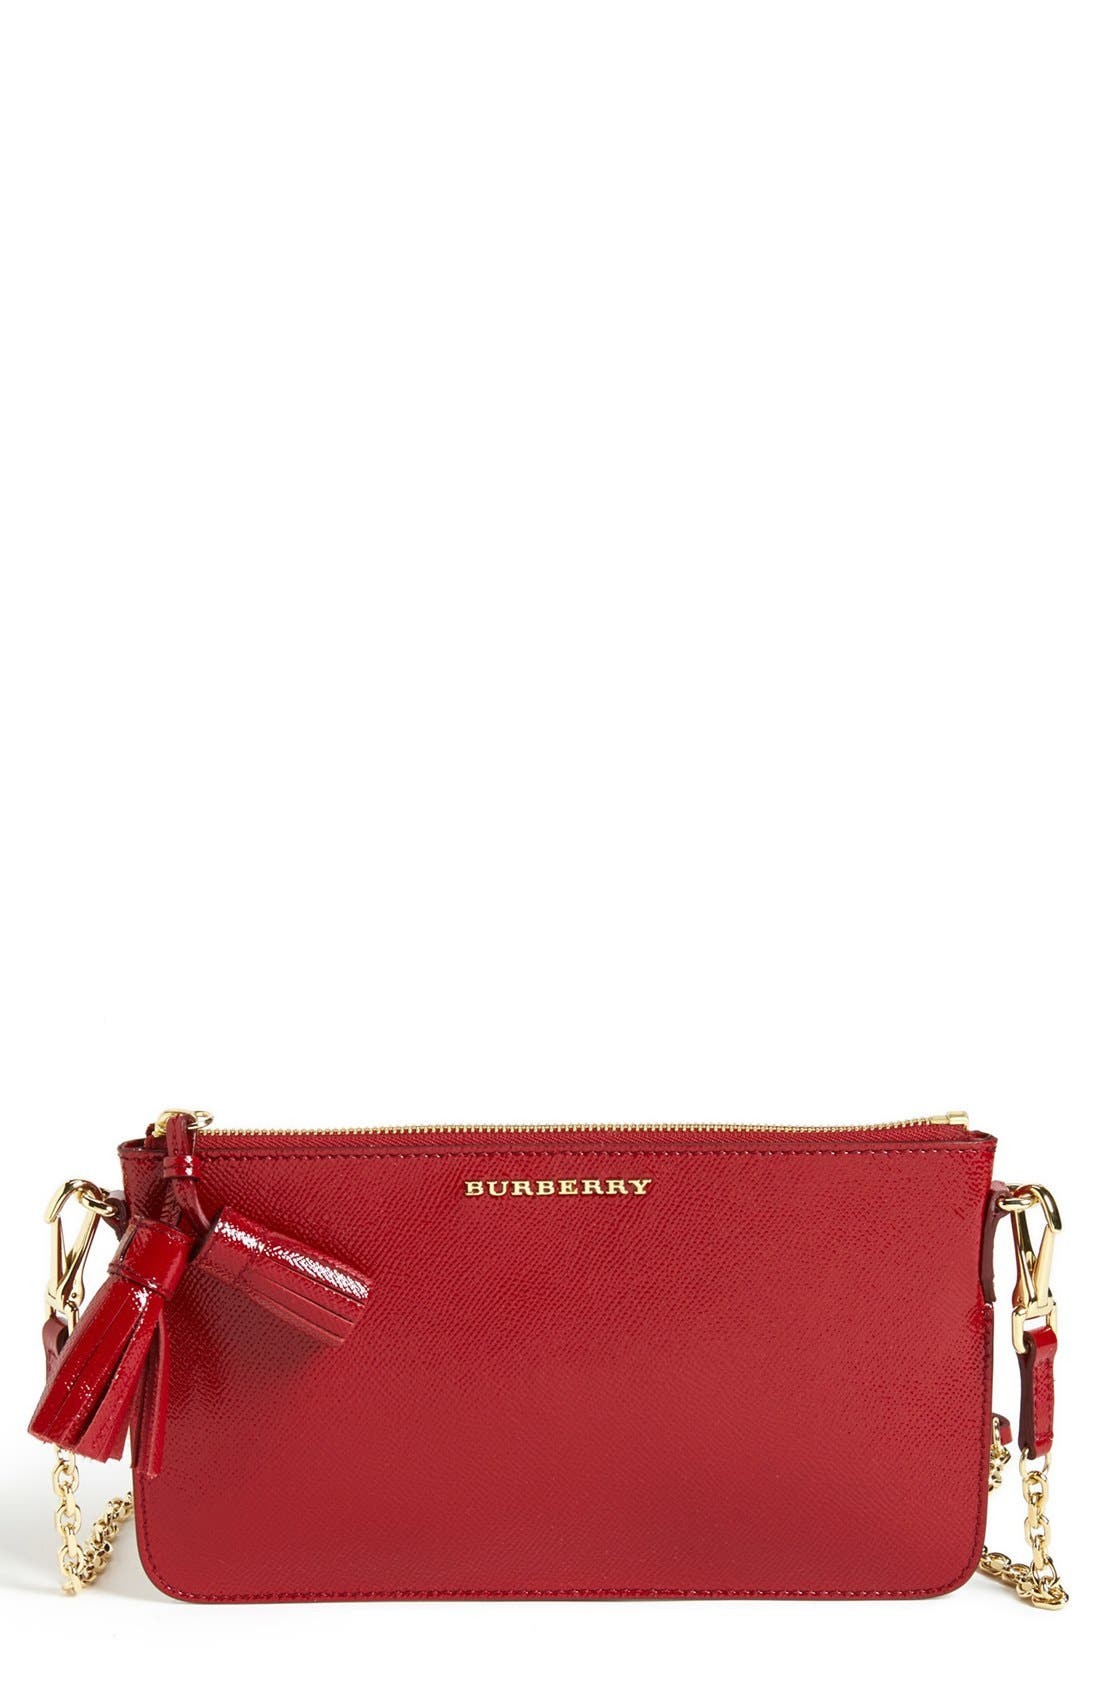 Alternate Image 1 Selected - Burberry 'Peyton' Crossbody Bag